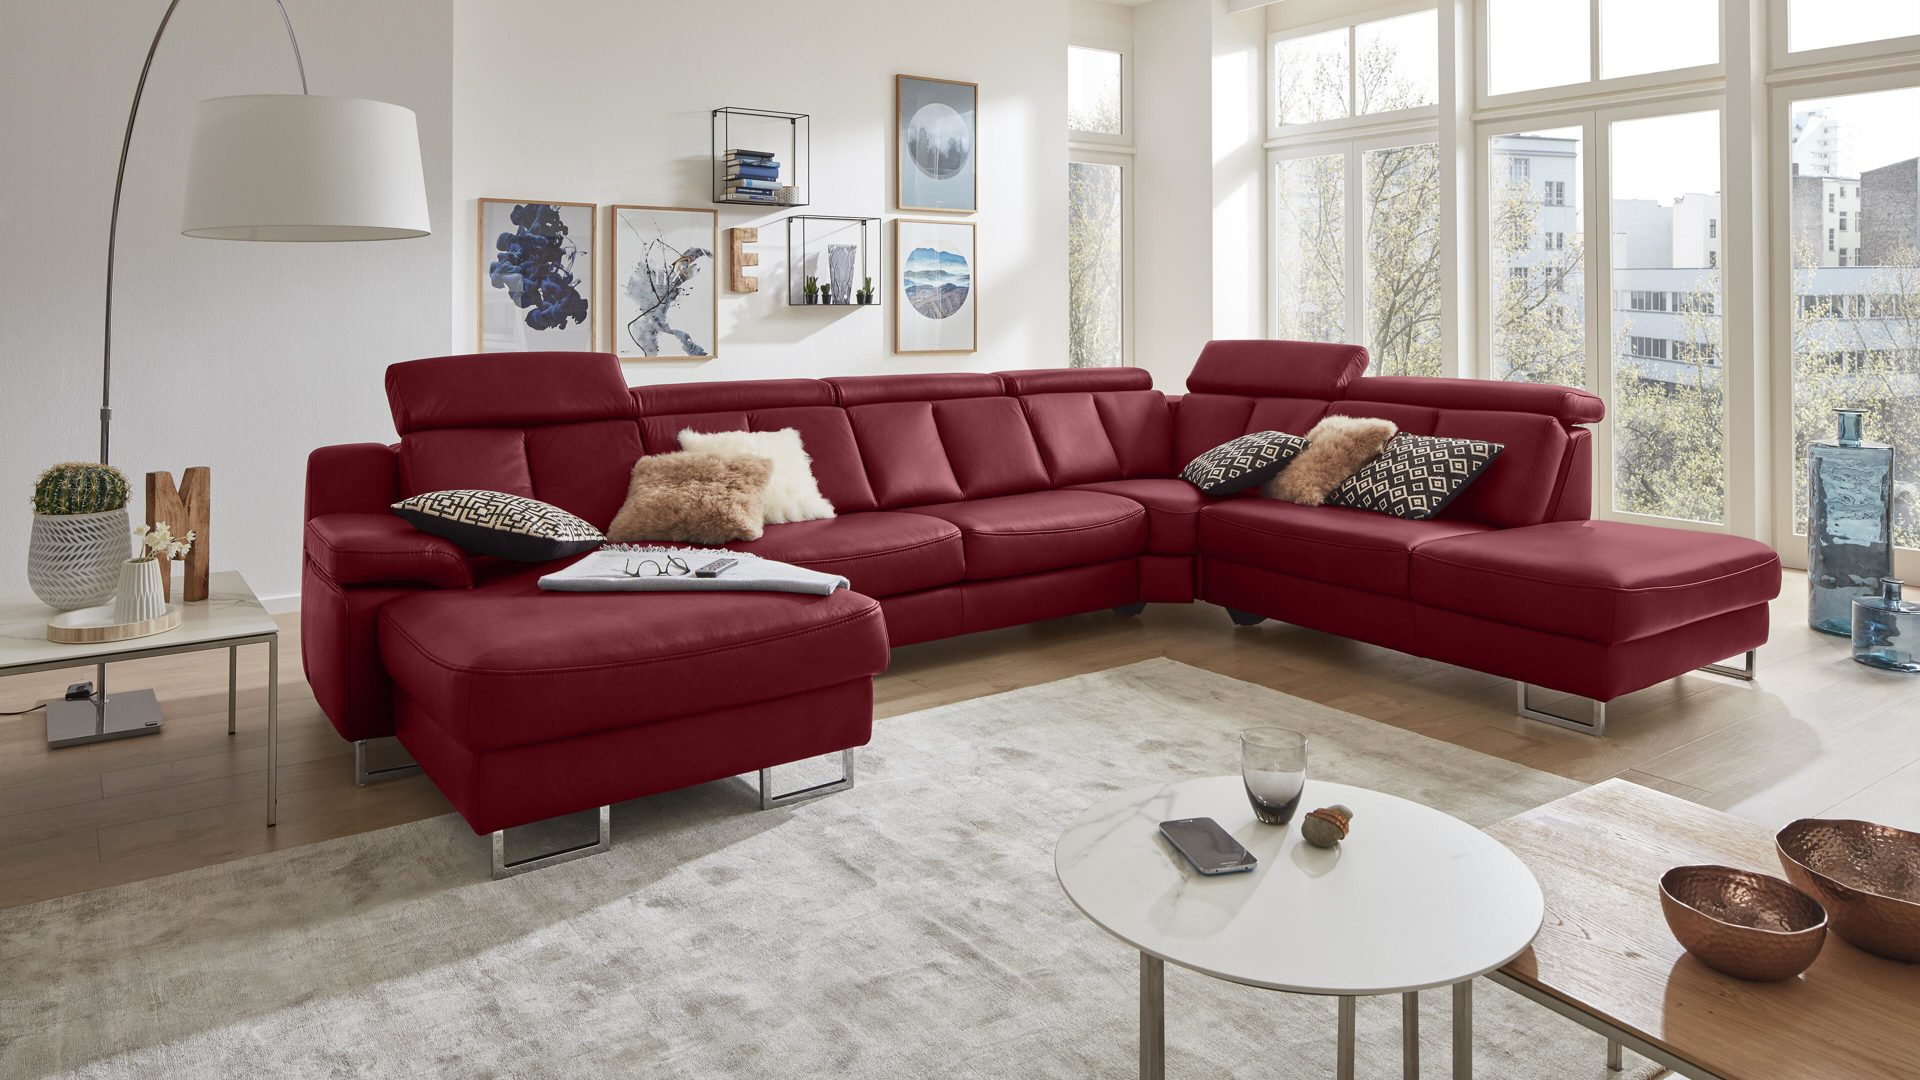 Mobel Eilers Apen Mobel A Z Couches Sofas Interliving